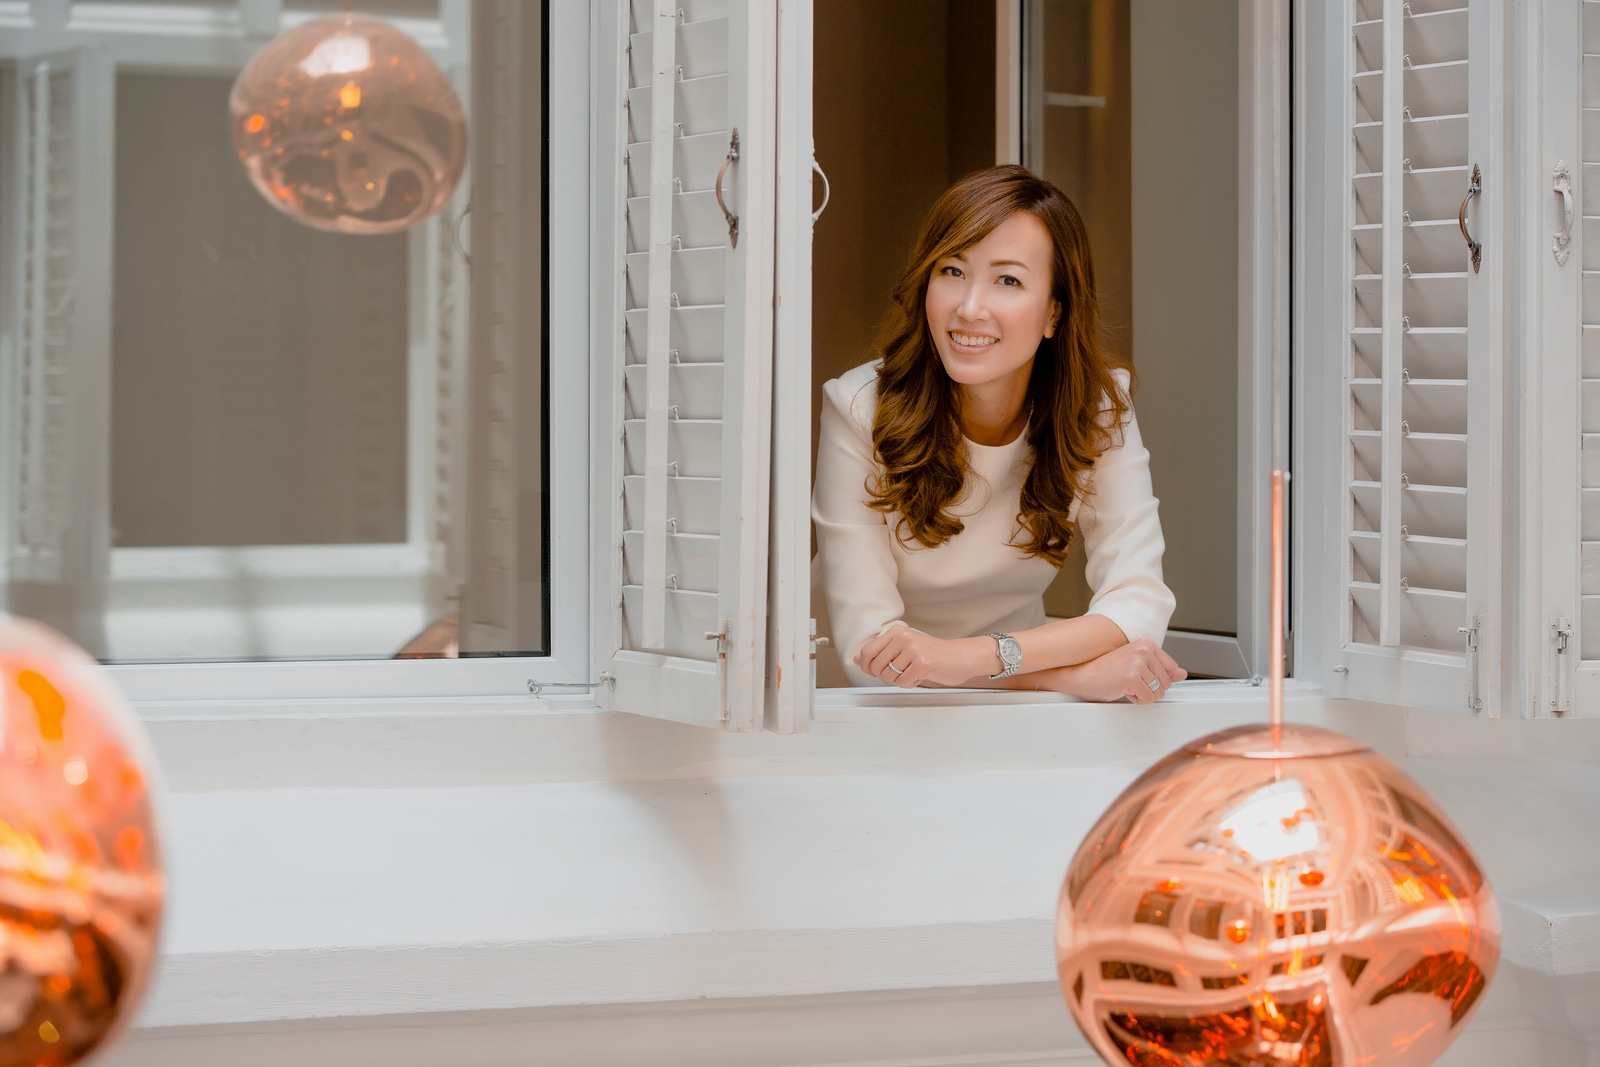 Dr. Angeline Yong, owner of 88 Armenian